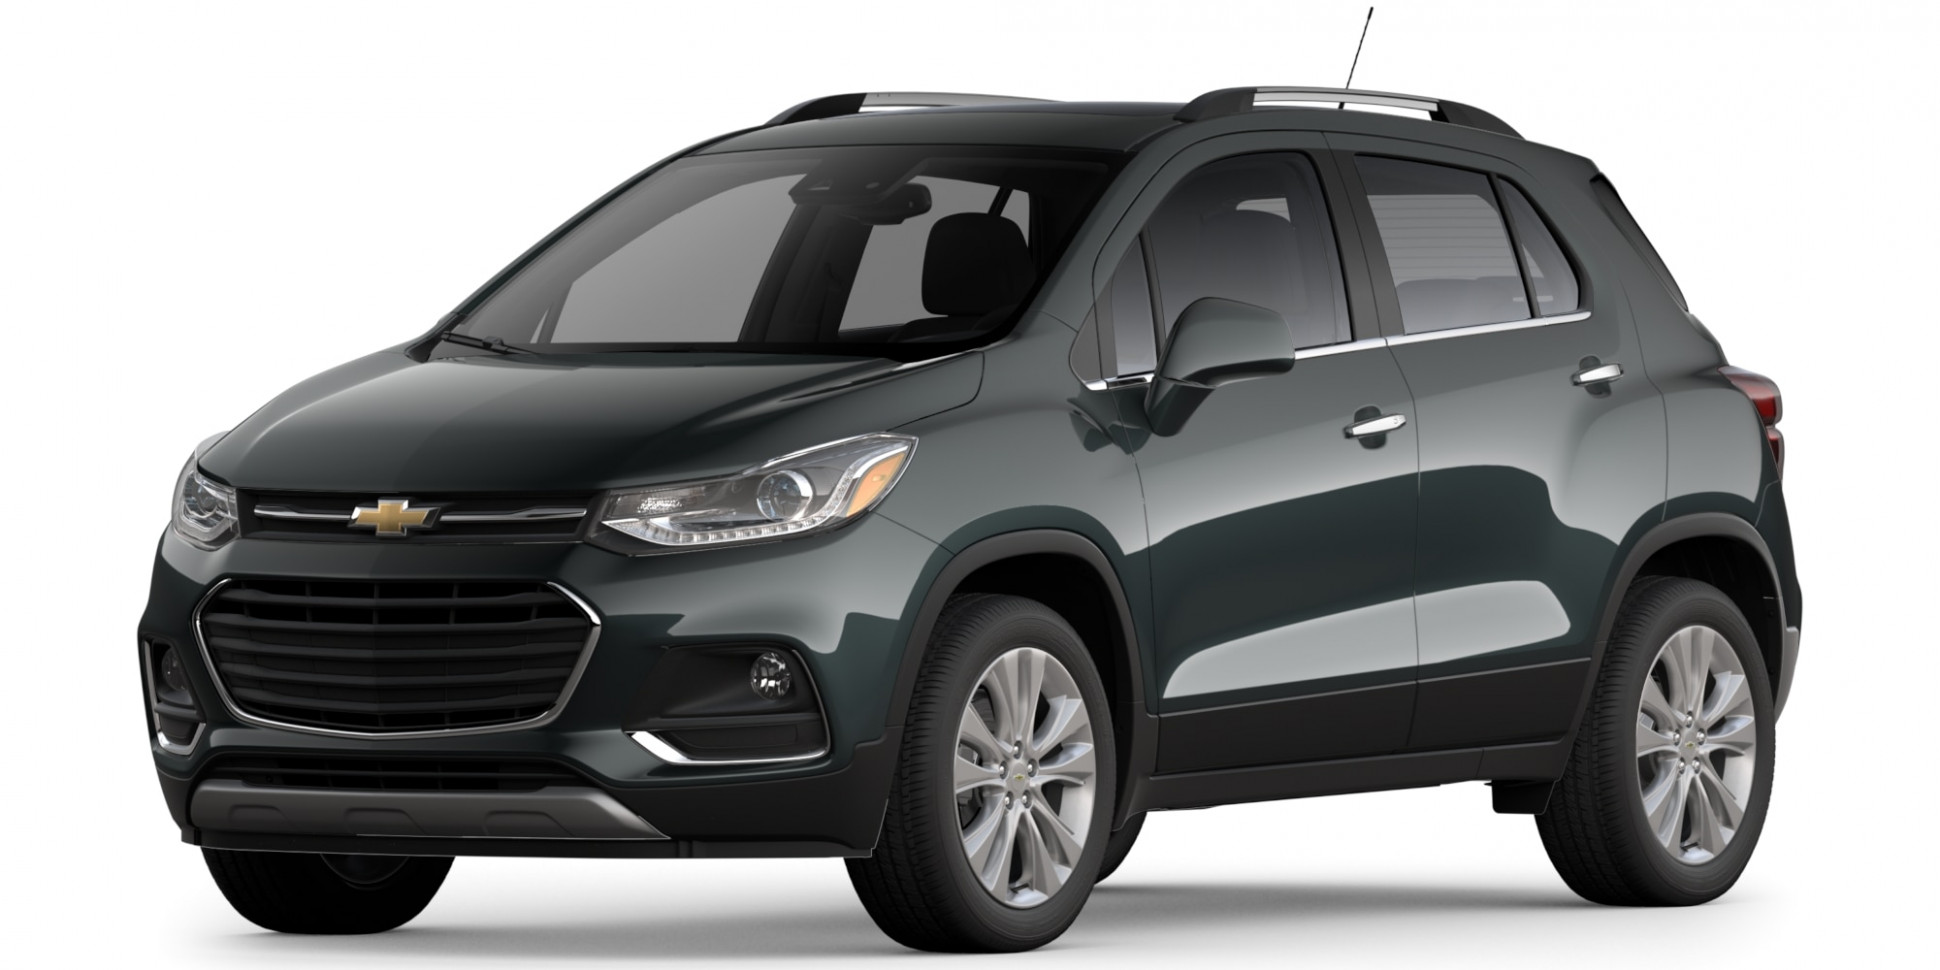 7 Chevy Trax | Compact SUV Crossover - 7 Row SUV - 2020 chevrolet trax